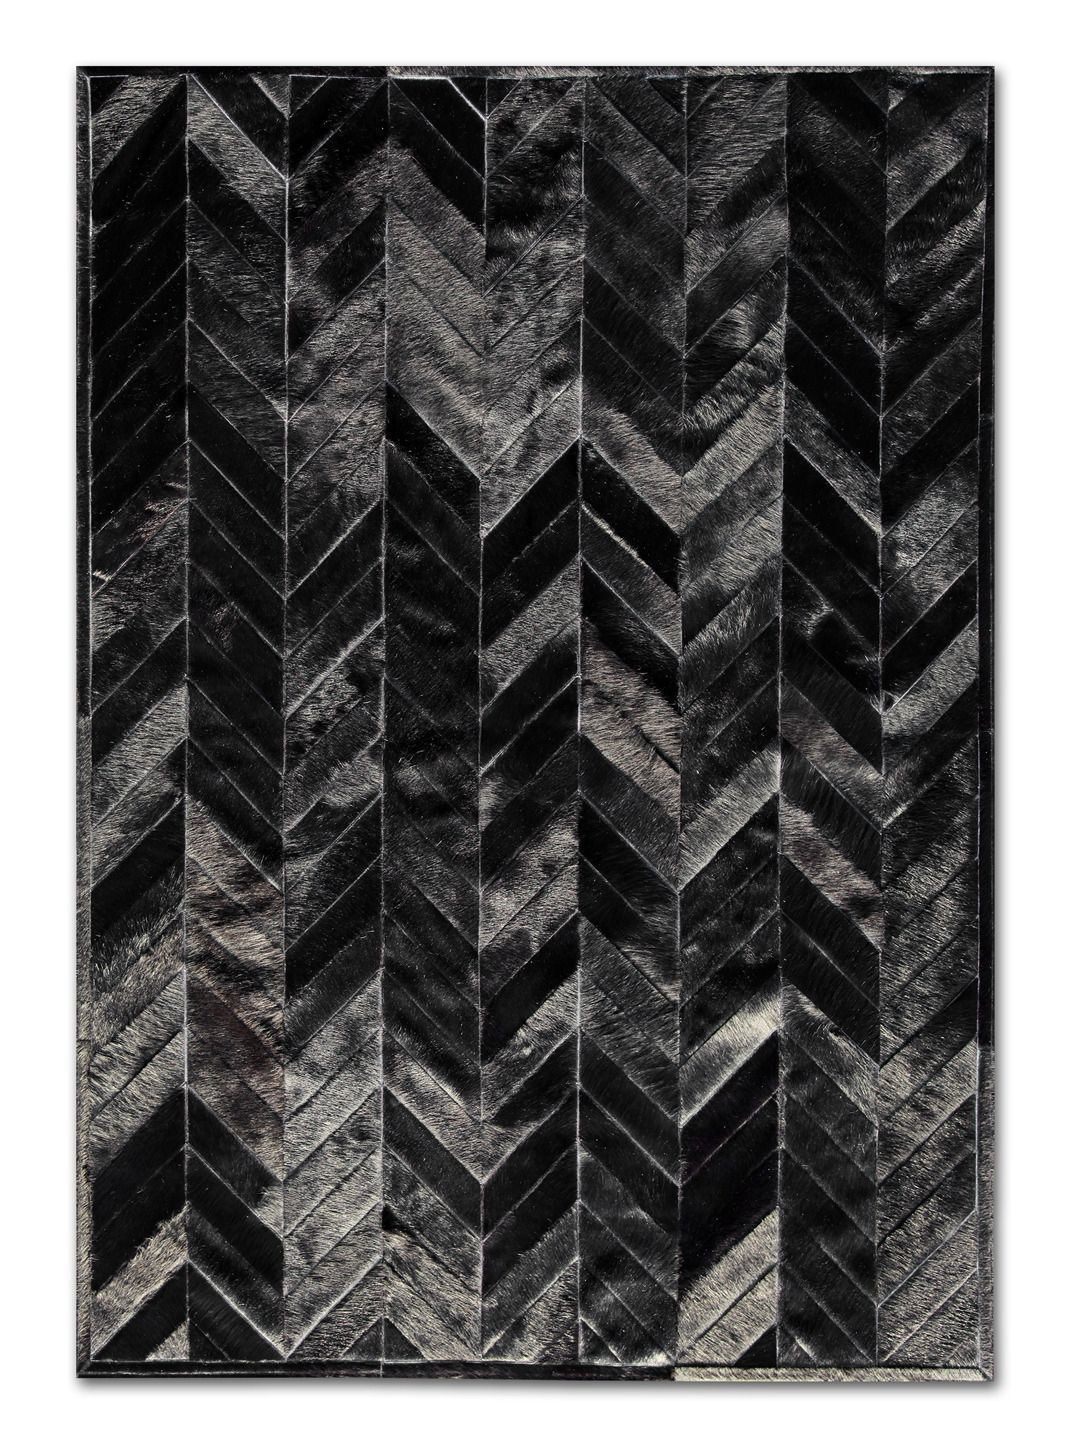 Yves Patchwork Cowhide Rug I Love The Coloring Of This I Just Wish It Wasn T Actually Made Of Fur Co Patchwork Cowhide Patchwork Cowhide Rug Cow Hide Rug